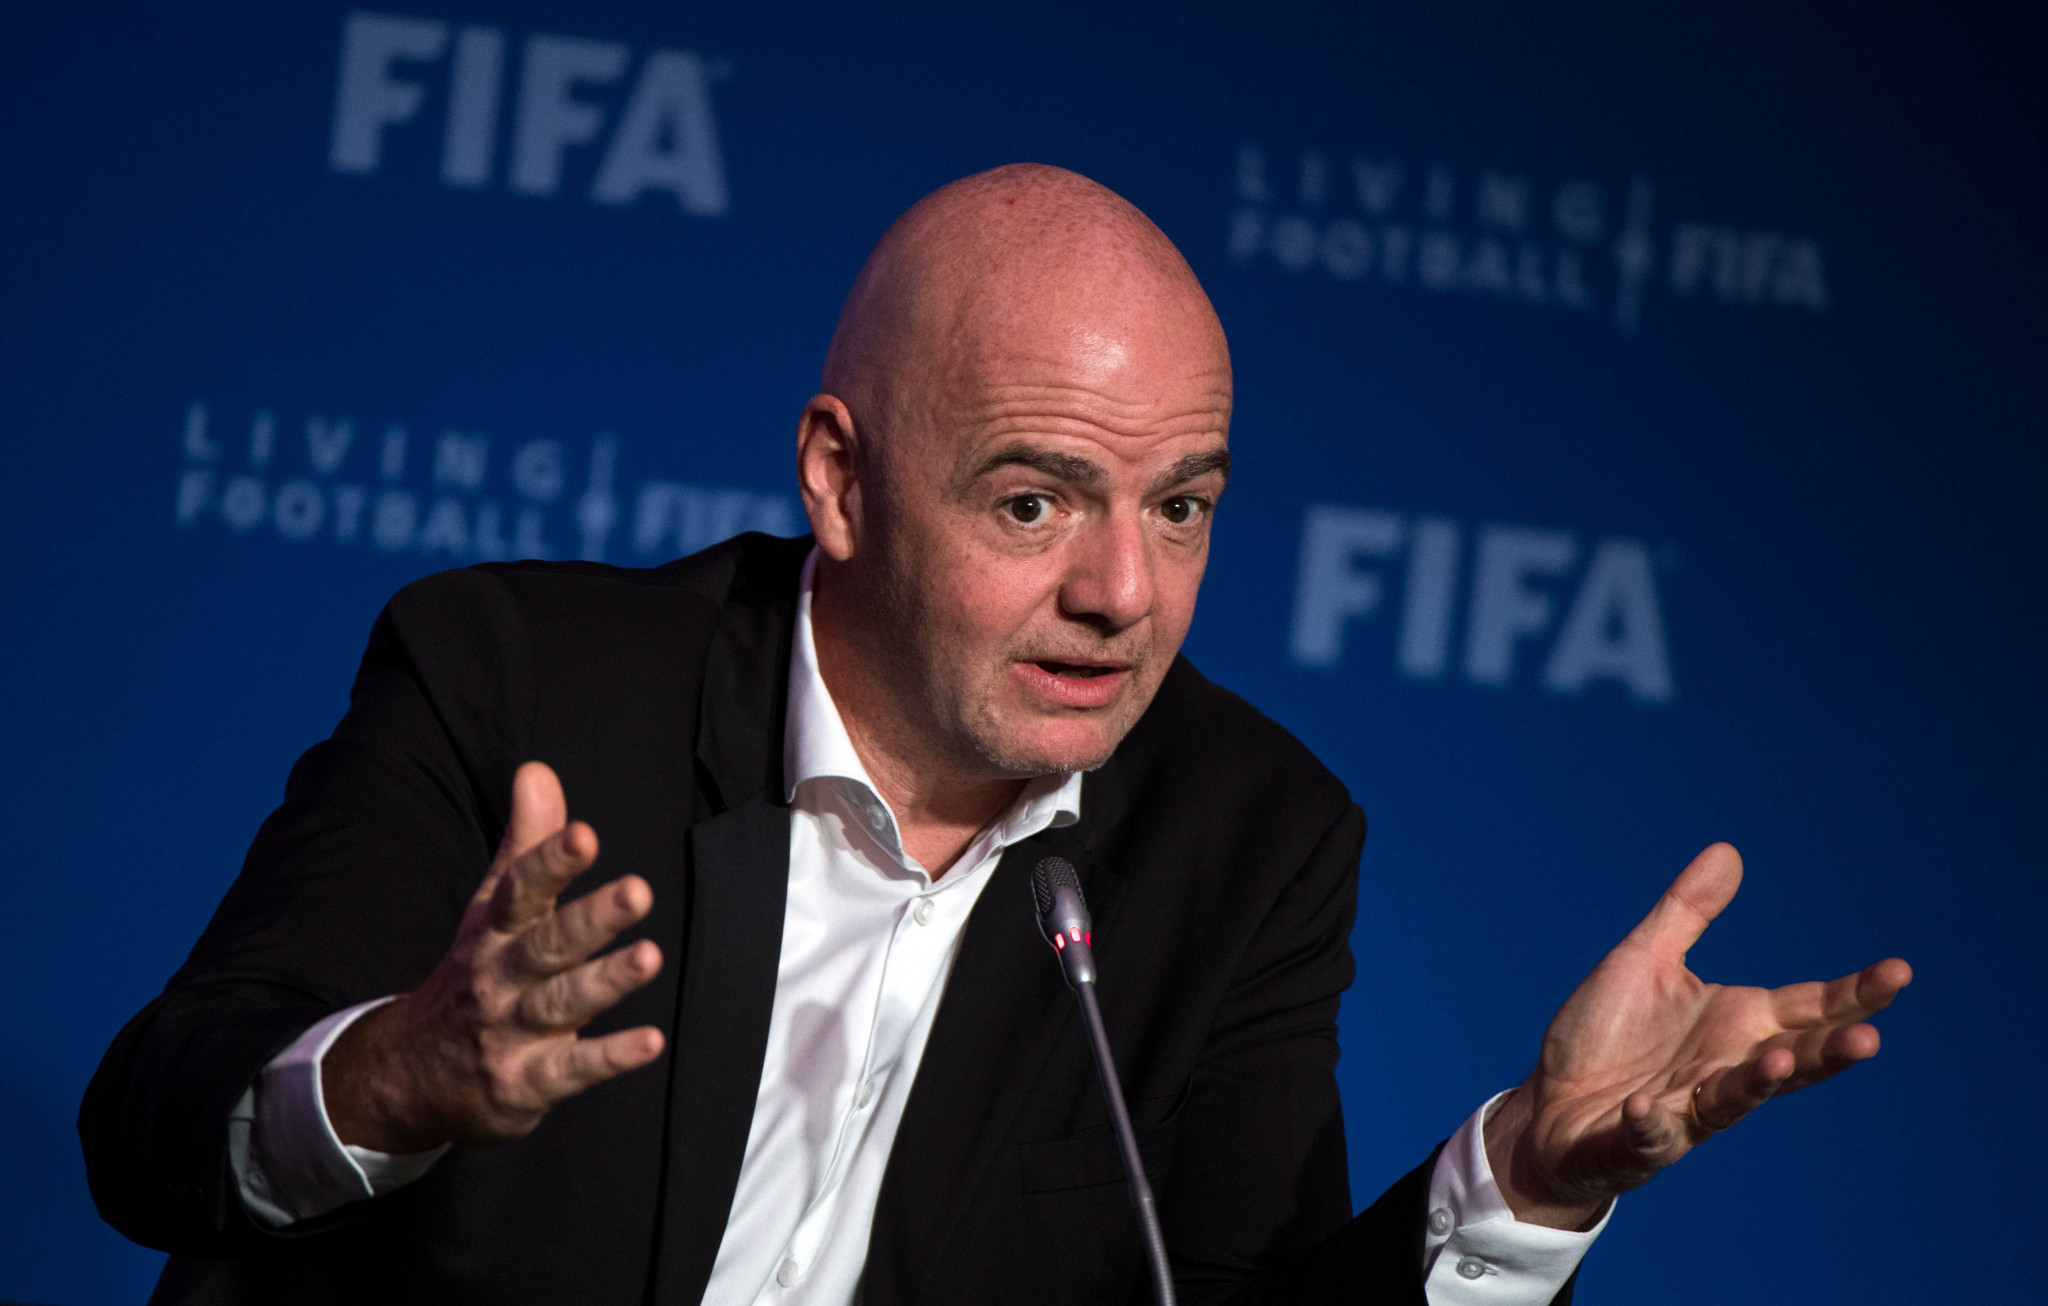 FIFA President Infantino claims strong support for 48-team World Cup in Qatar